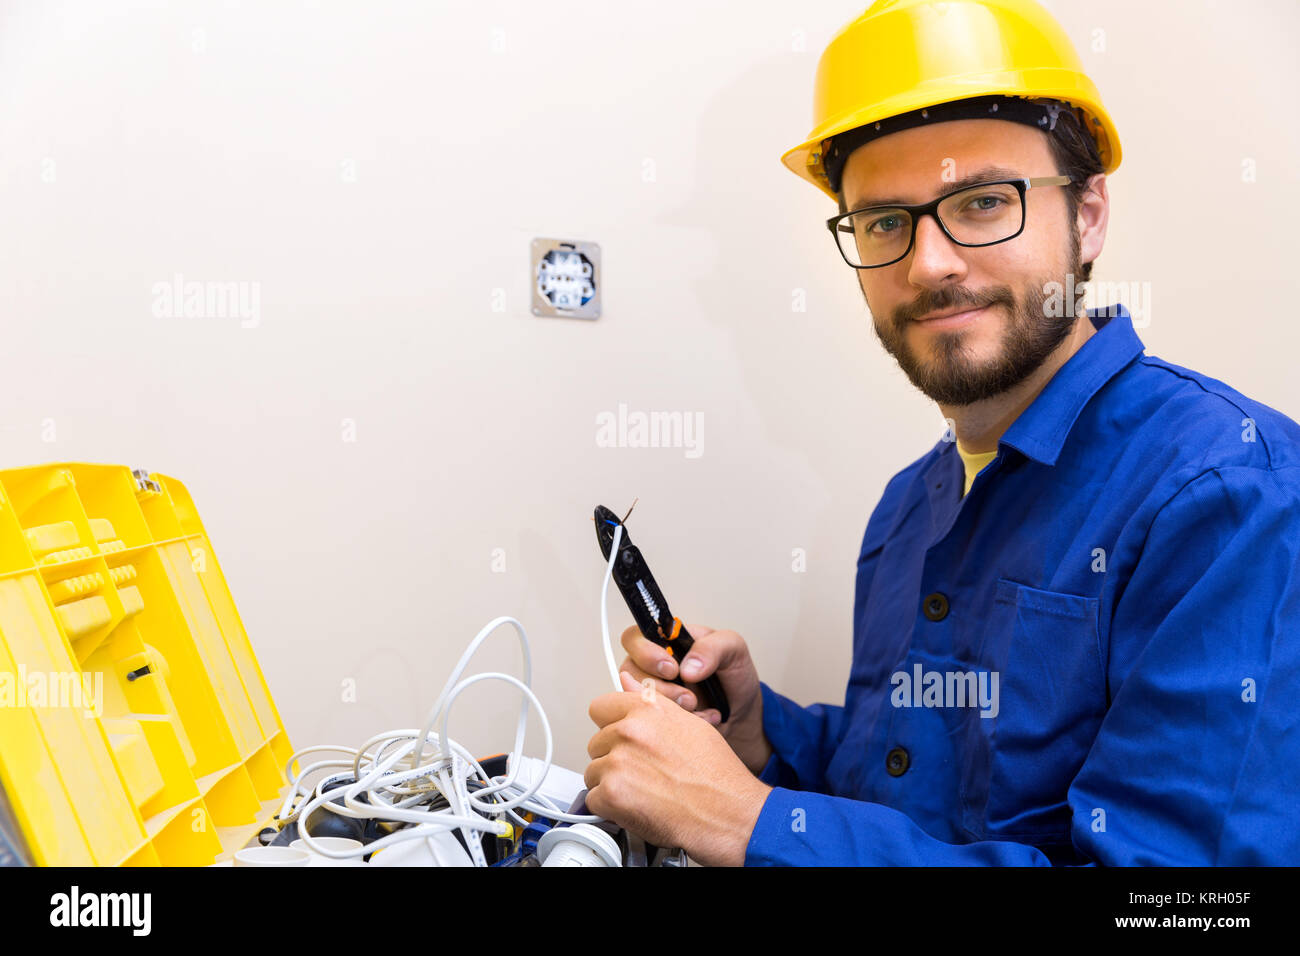 electrician occupation - worker and toolbox with electric accessories - Stock Image